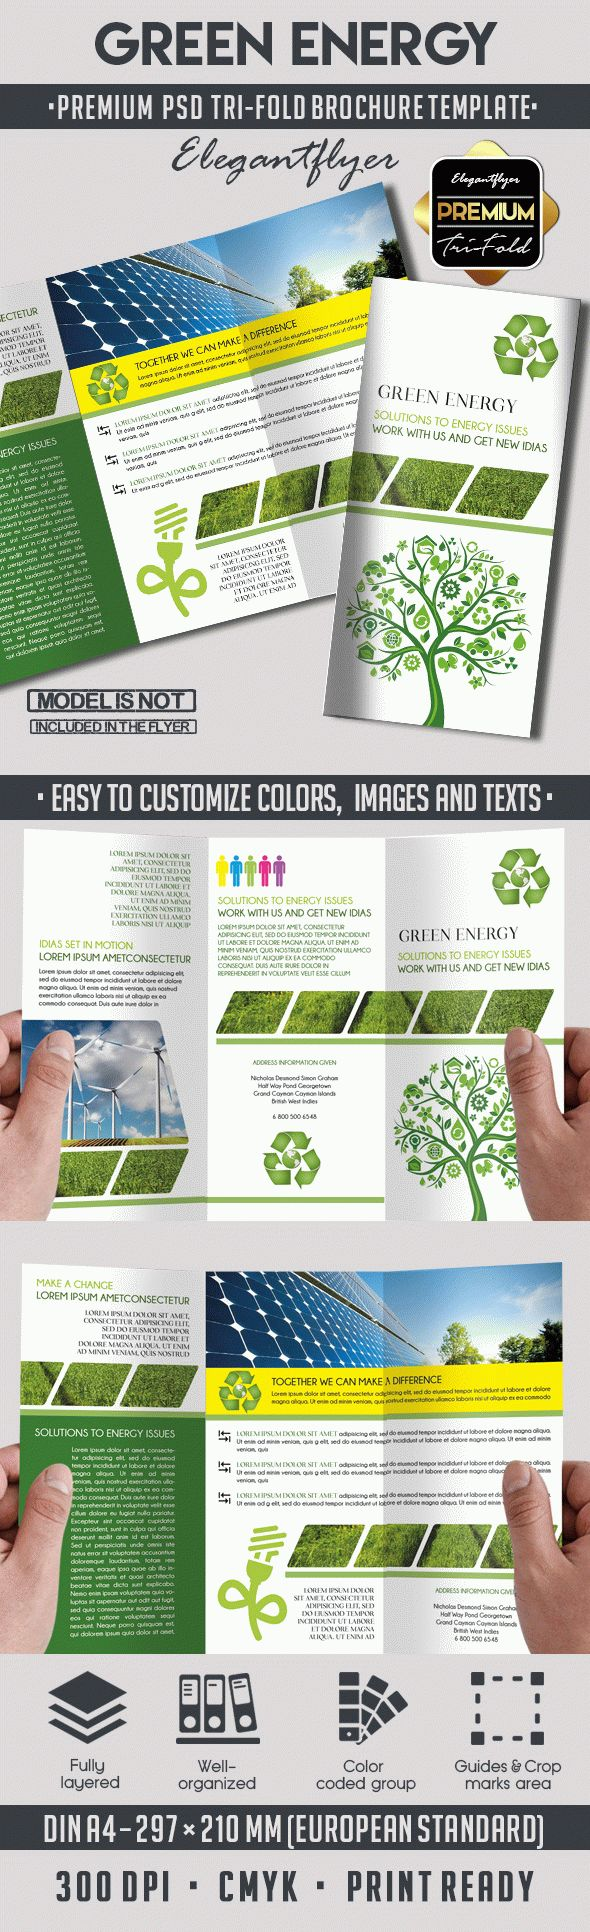 Design Brochure for Green Energy